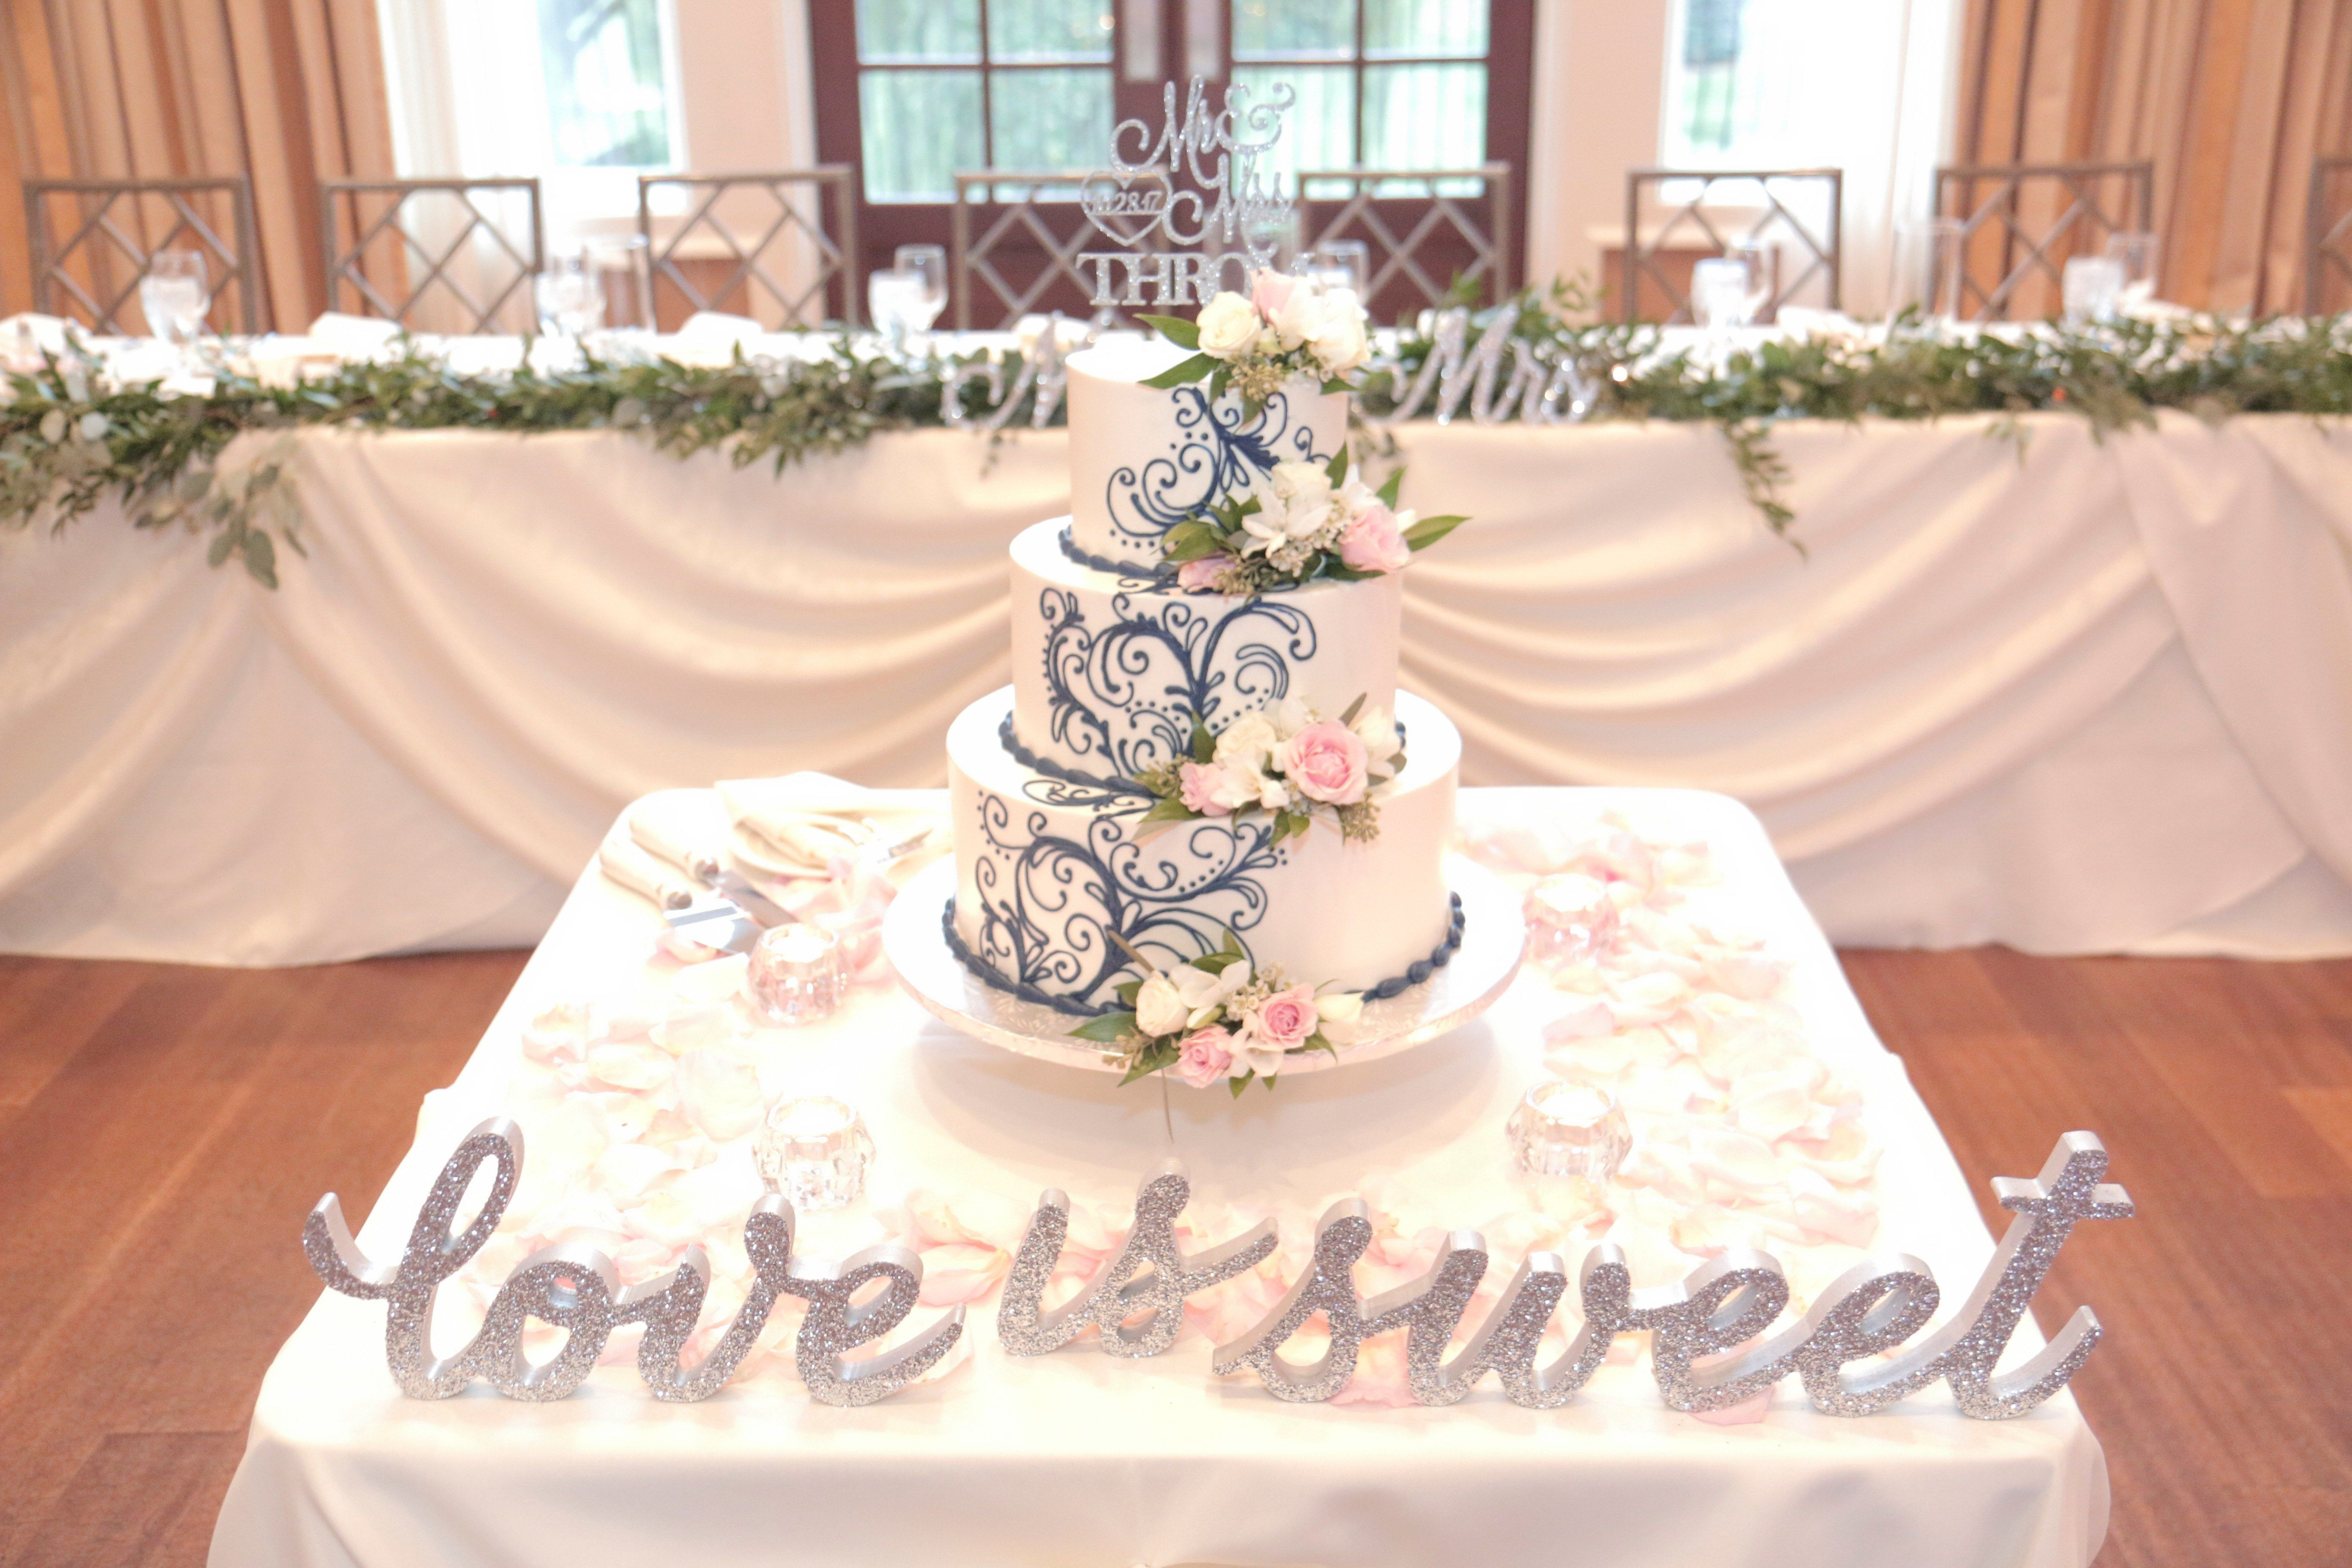 Love Is Sweet Signs For Dessert Table Wedding Sign For Candy Dessert Or Wedding Table Decor Wooden Signs For Wedding Item Lis200 Wedding Dessert Table Wedding Dessert Table